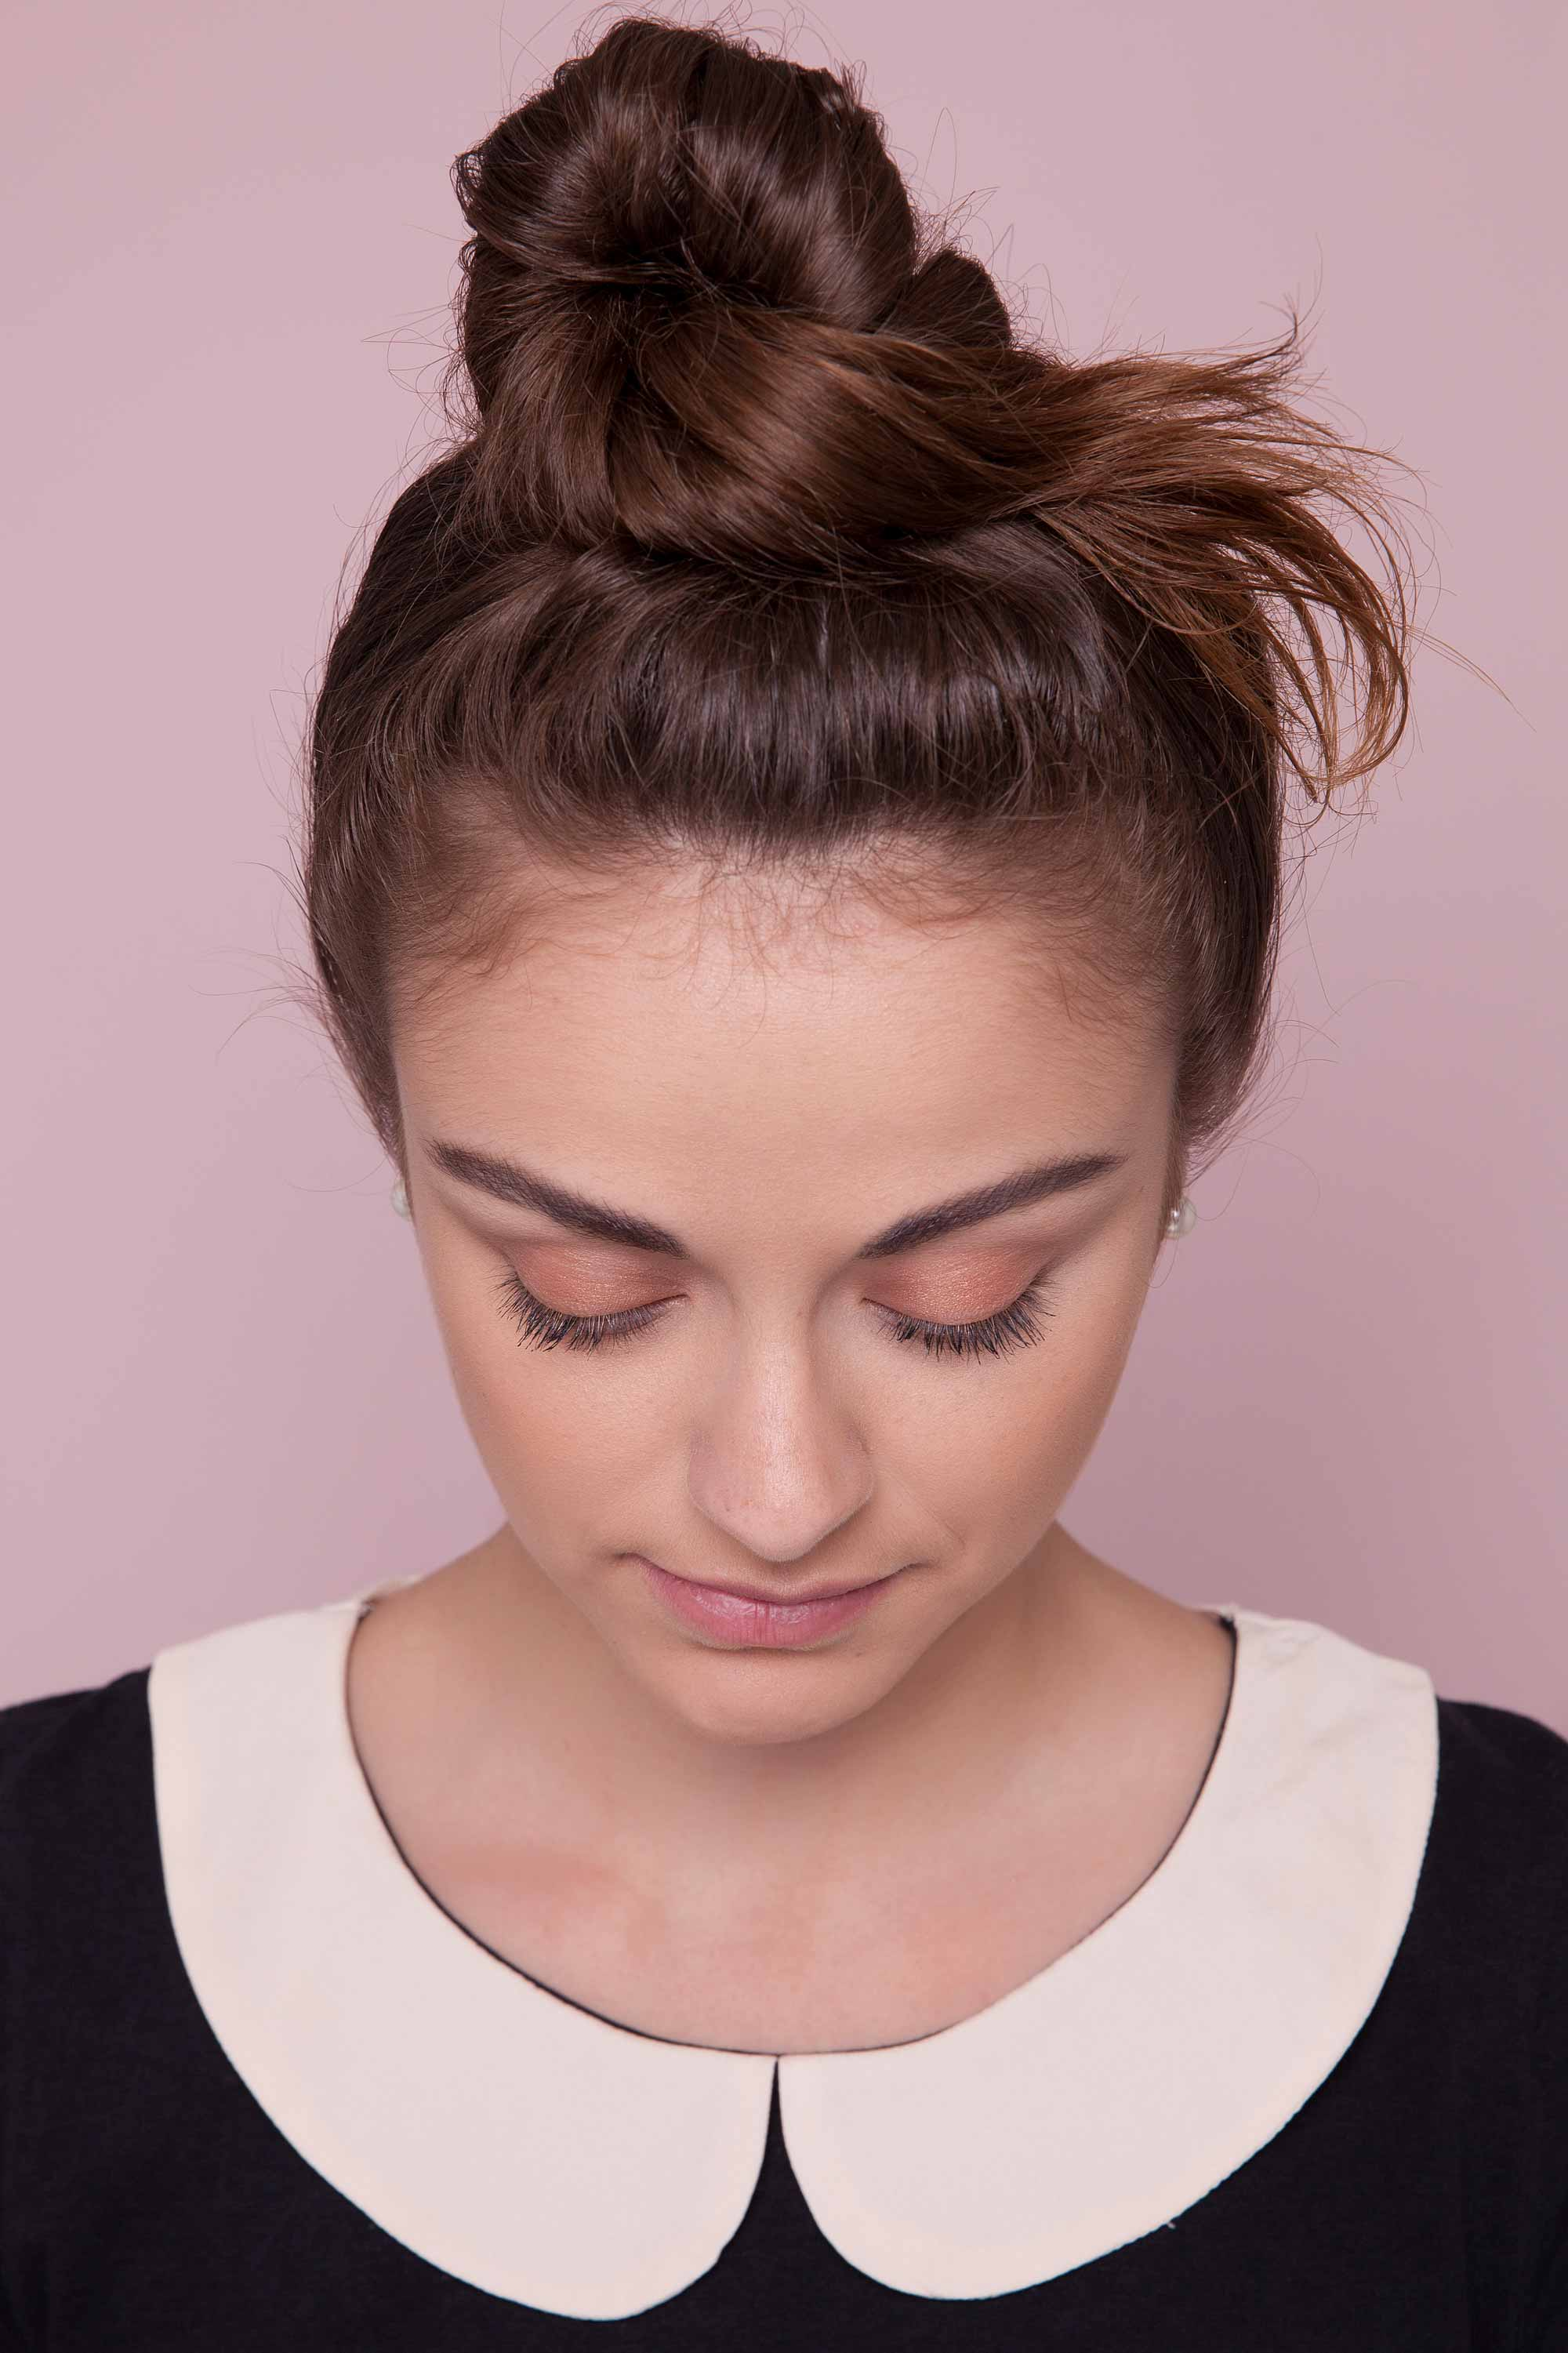 How To Style Long Hair  Top Styling Tips - Styling long hair